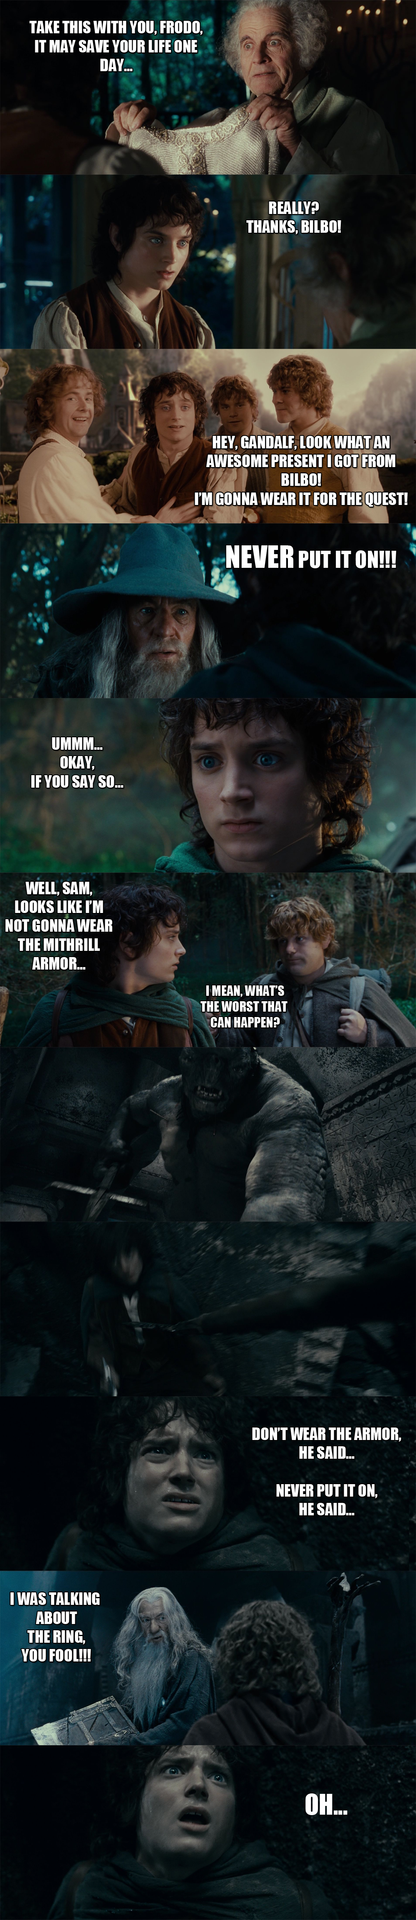 The Lord of the Rings - A simple mistake... by yourparodies